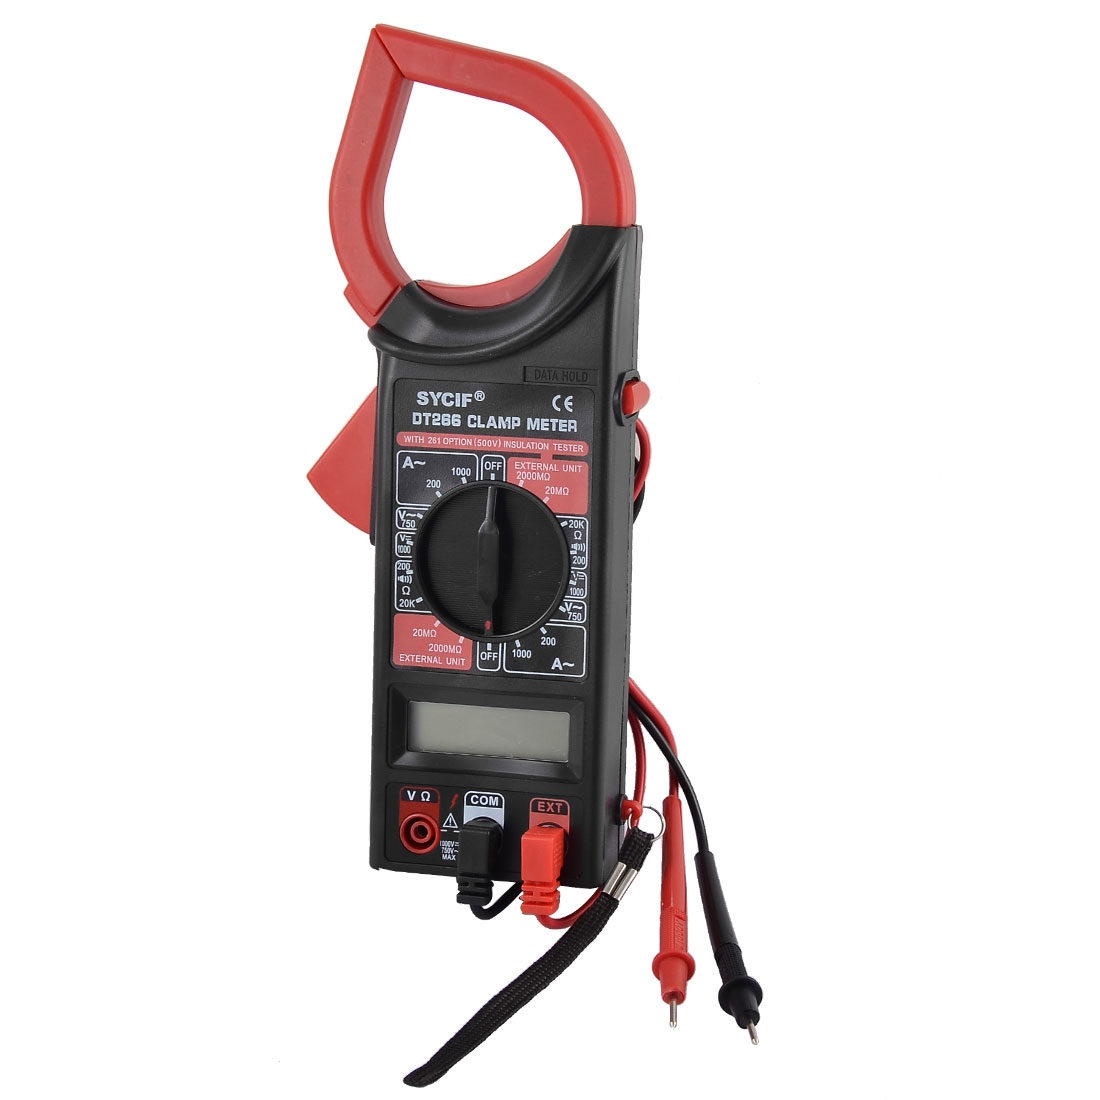 2000 Counts AC DC Current Digital Clamp Meter Multimeter w Hand Strap